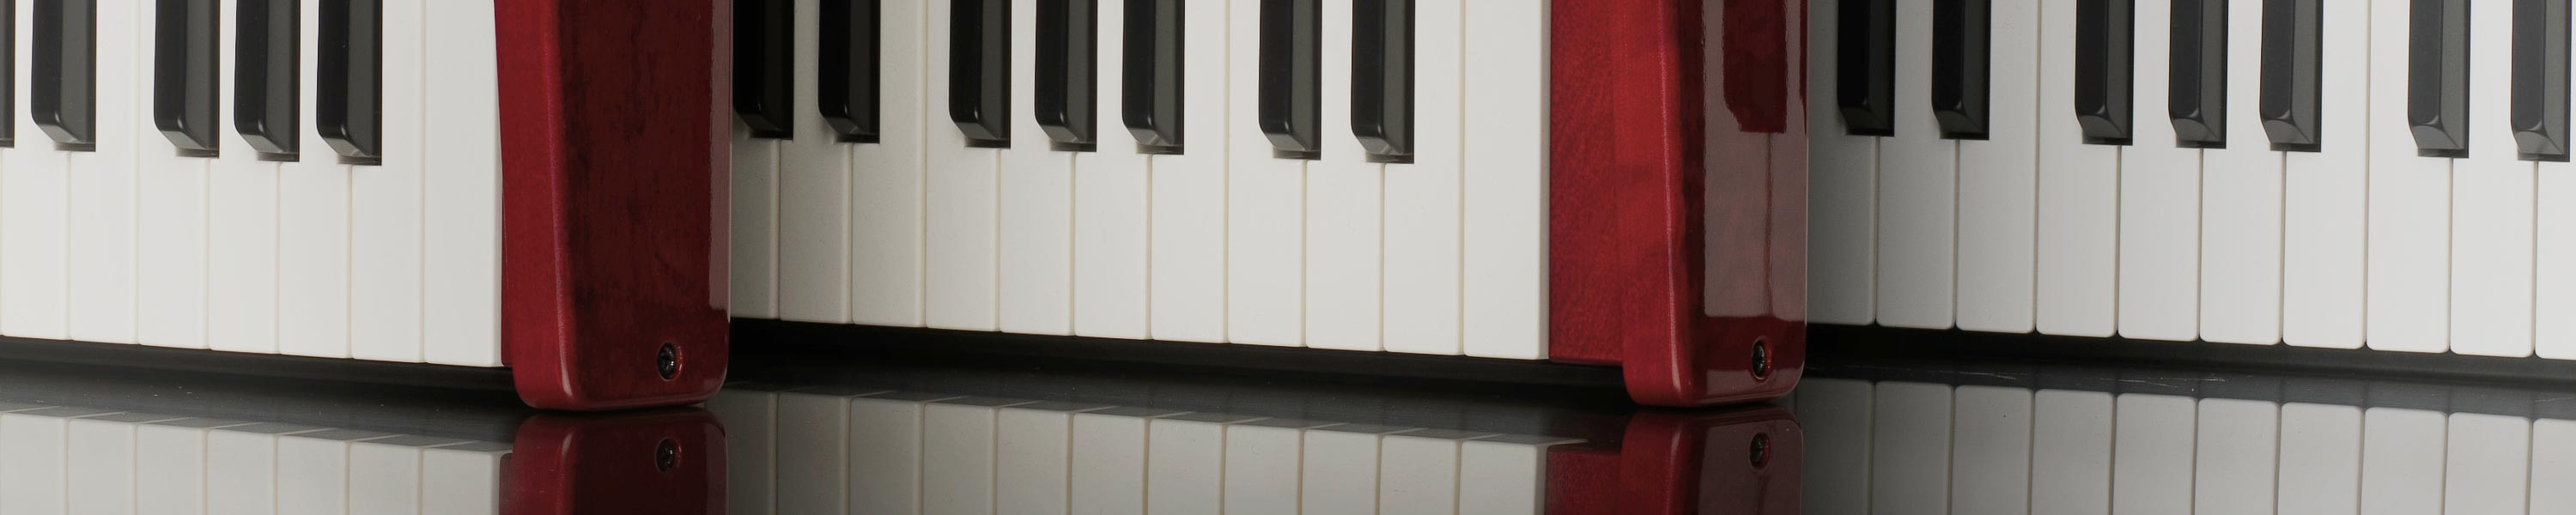 Clavia Nord Software